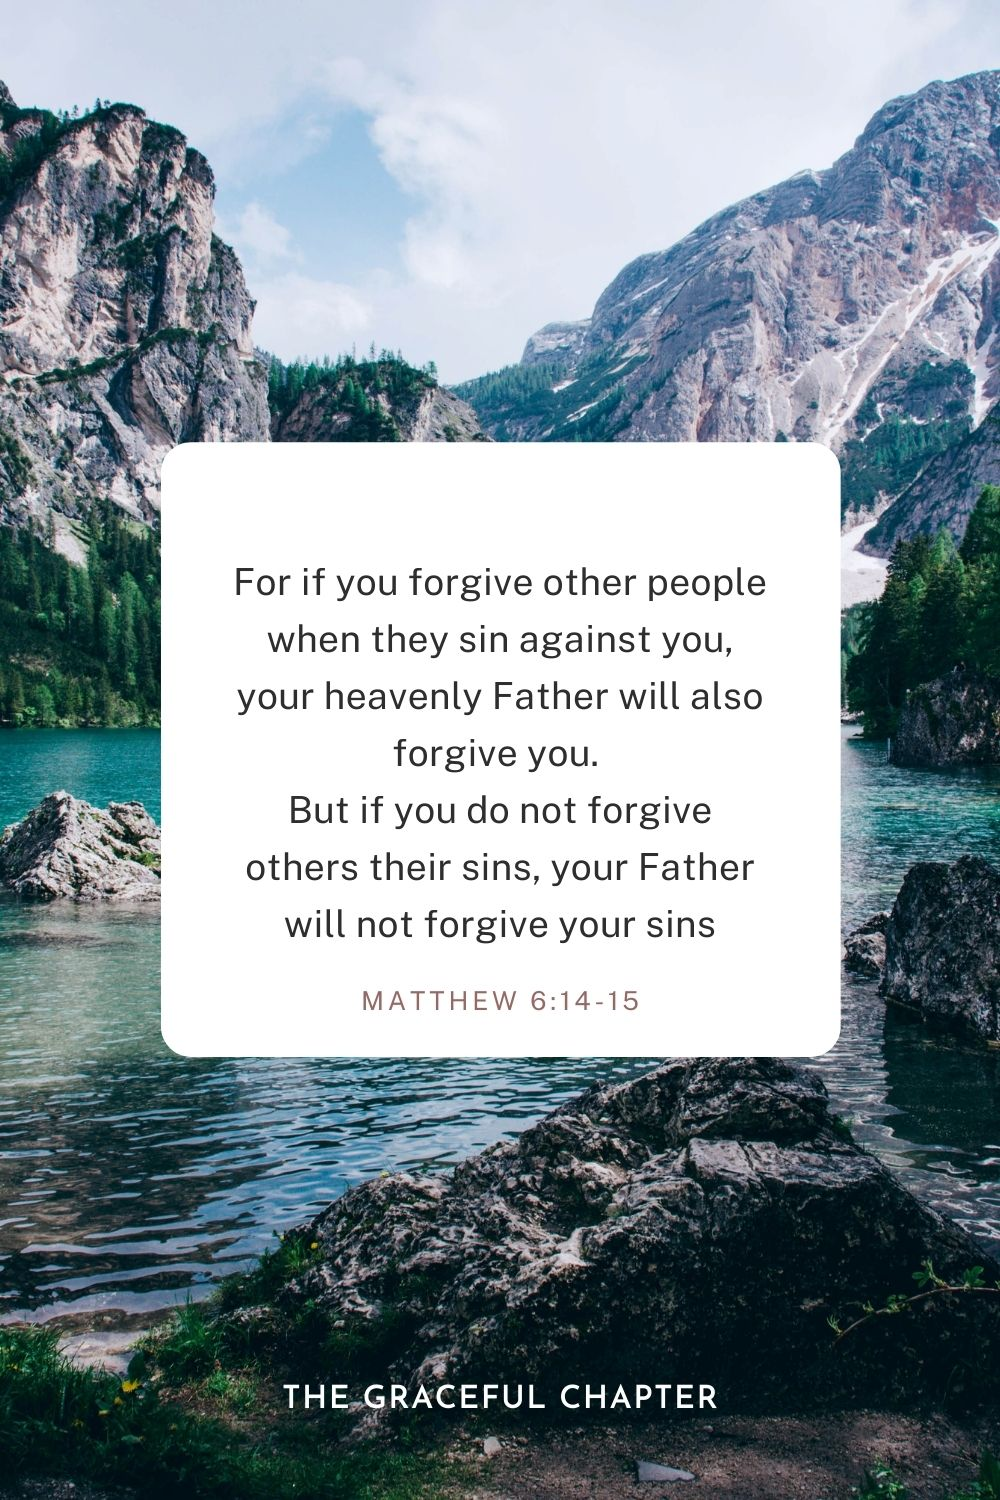 For if you forgive other people when they sin against you, your heavenly Father will also forgive you. But if you do not forgive others their sins, your Father will not forgive your sins Matthew 6:14-15